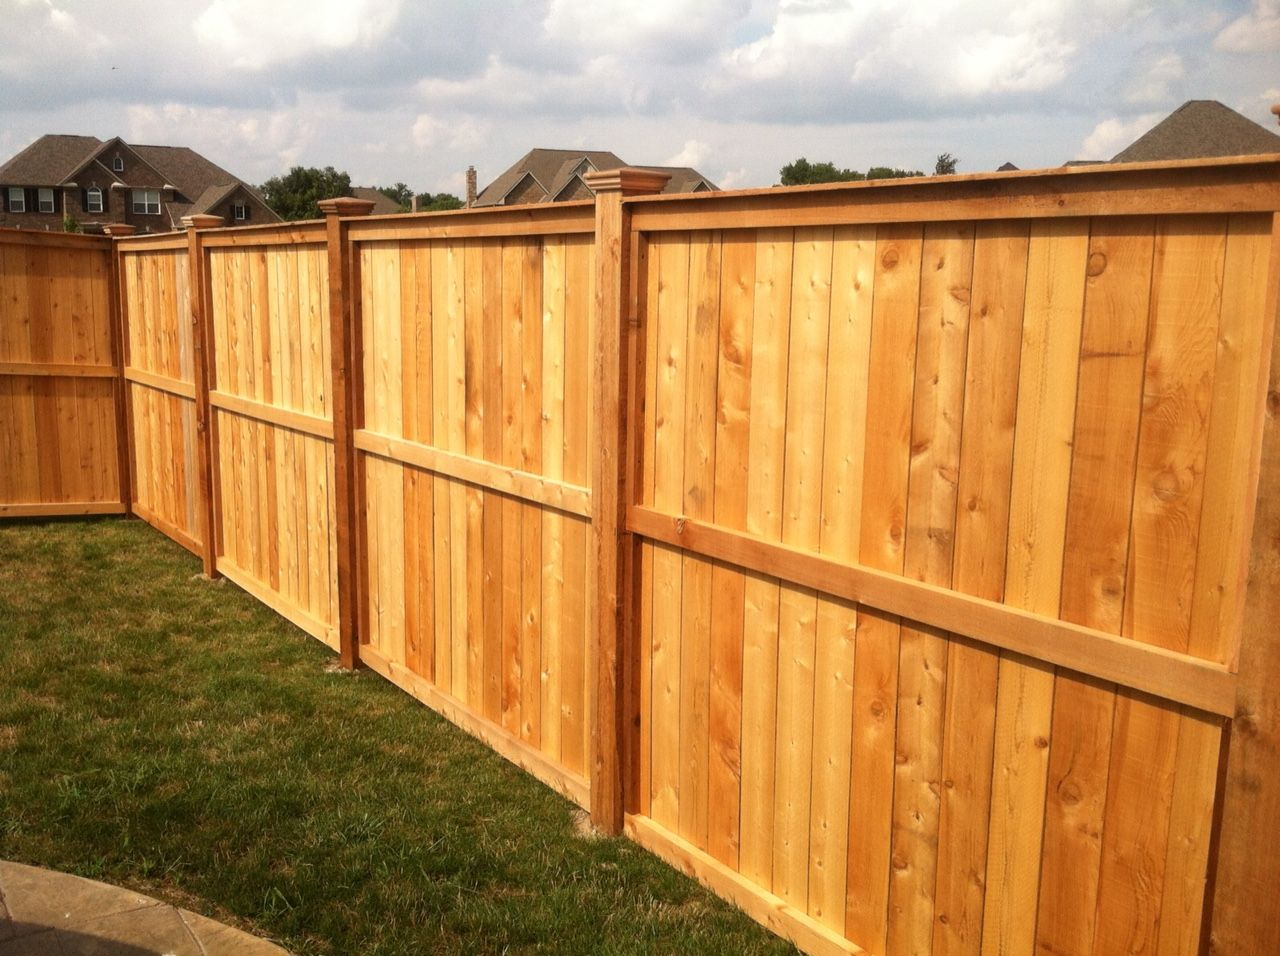 Fences We Build Iron Vinyl Wooden Chain Link Repairs Gates Wood Pallet Fence Wood Fence Design Wood Privacy Fence